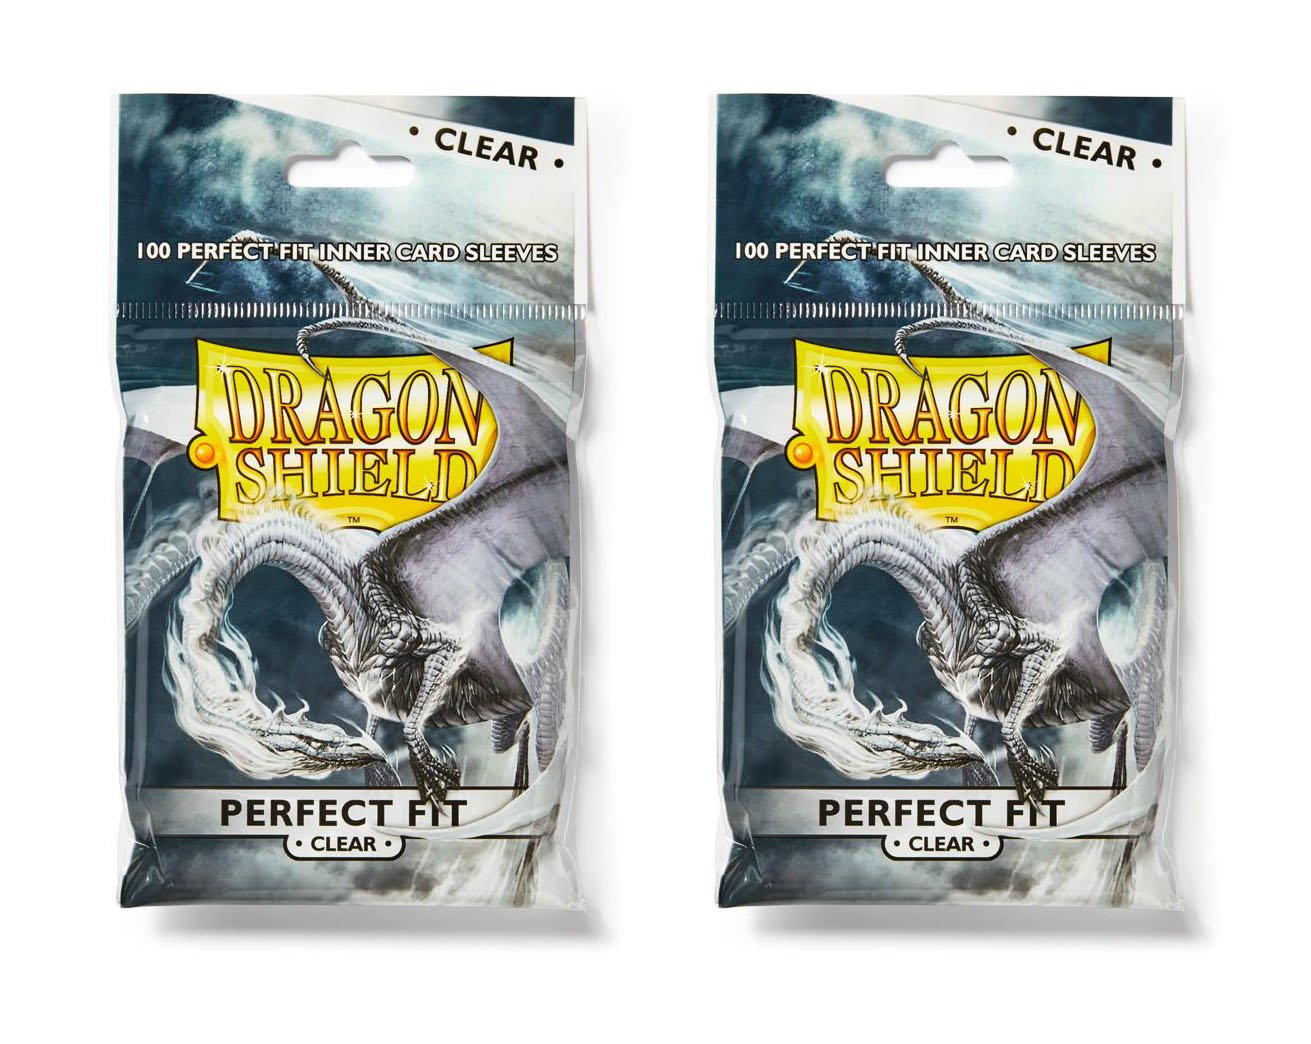 Dragon Shield Bundle: 2 Packs of Clear Standard Size Perfect Fit Sleeves - 200 Sleeves Total by Dragon Shield